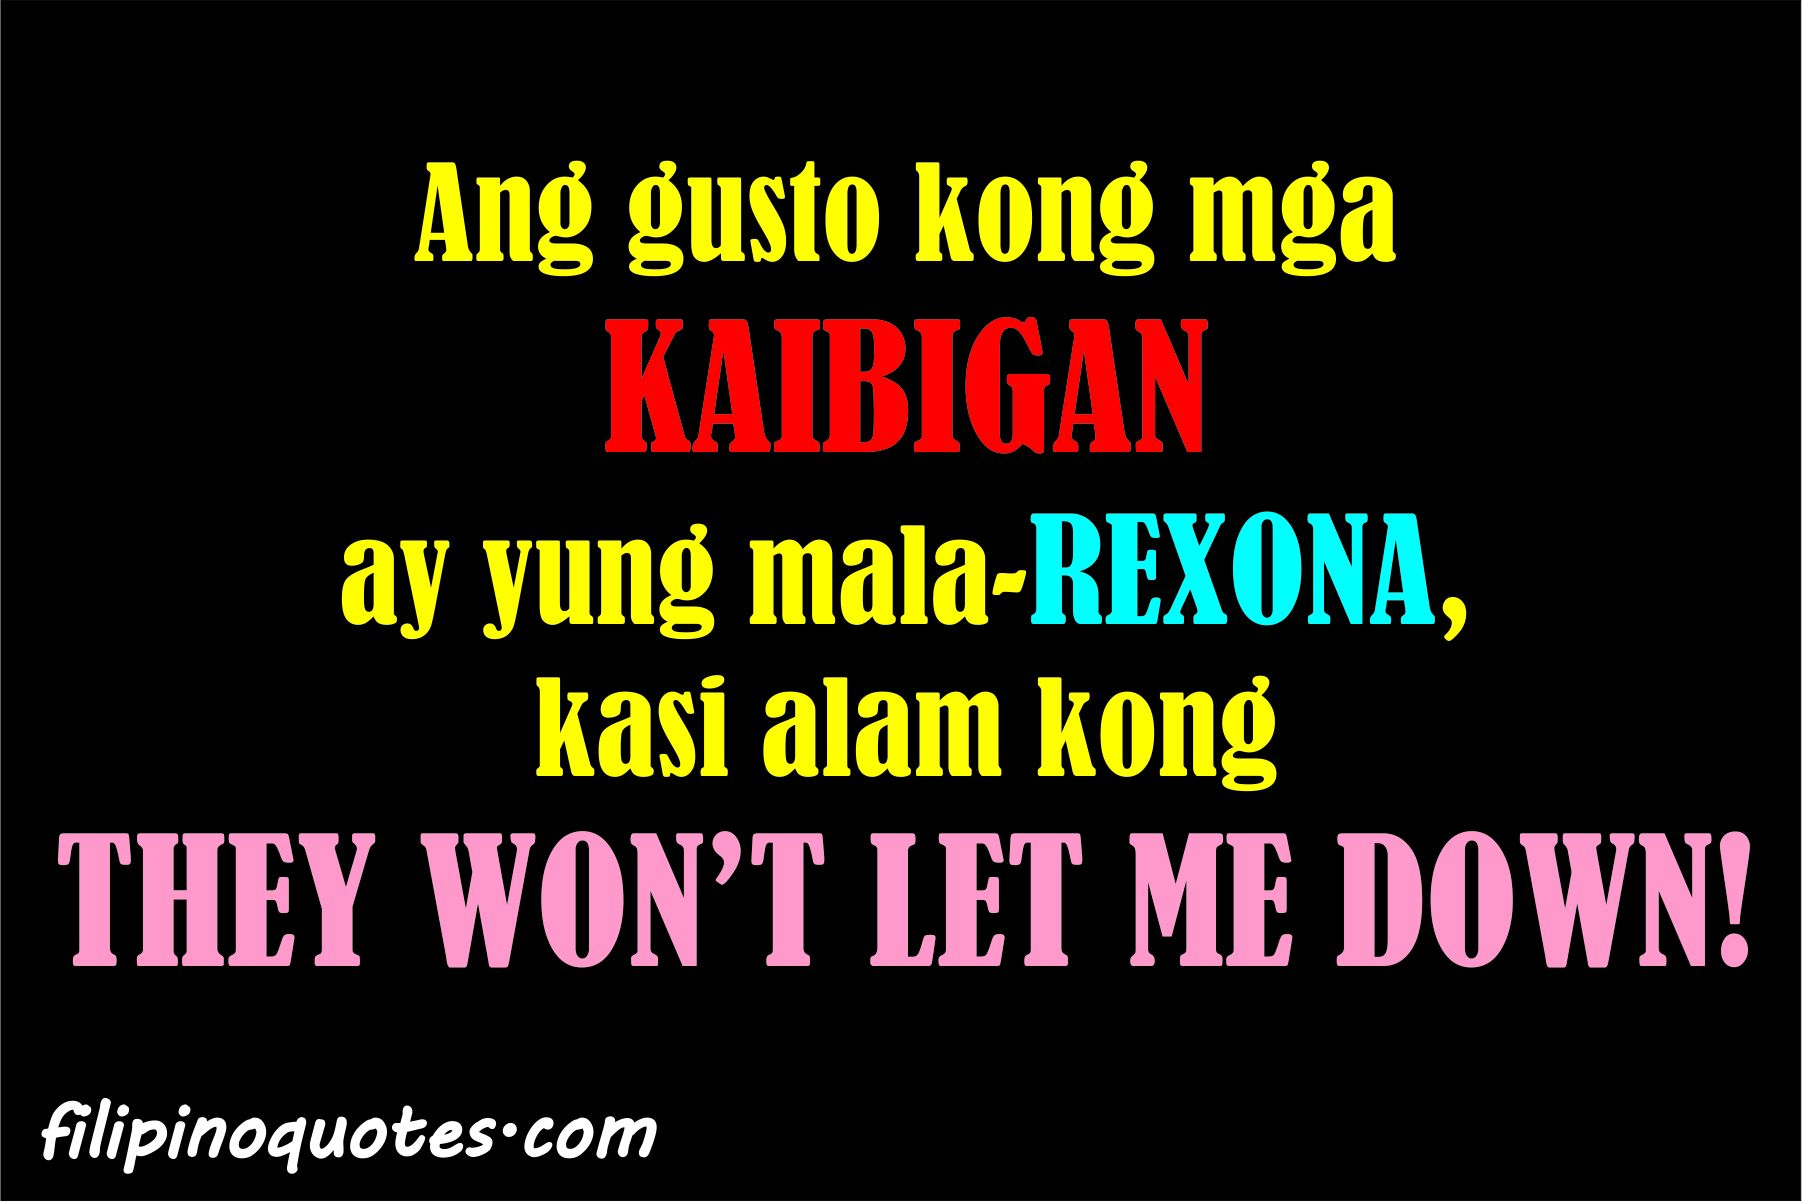 Inspirational Quotes For Best Friends Tagalog Tagalog Life Quotes Ask Image Search T Funny Quotes Quotes About Friendship Tagalog Inspirational Quotes Download